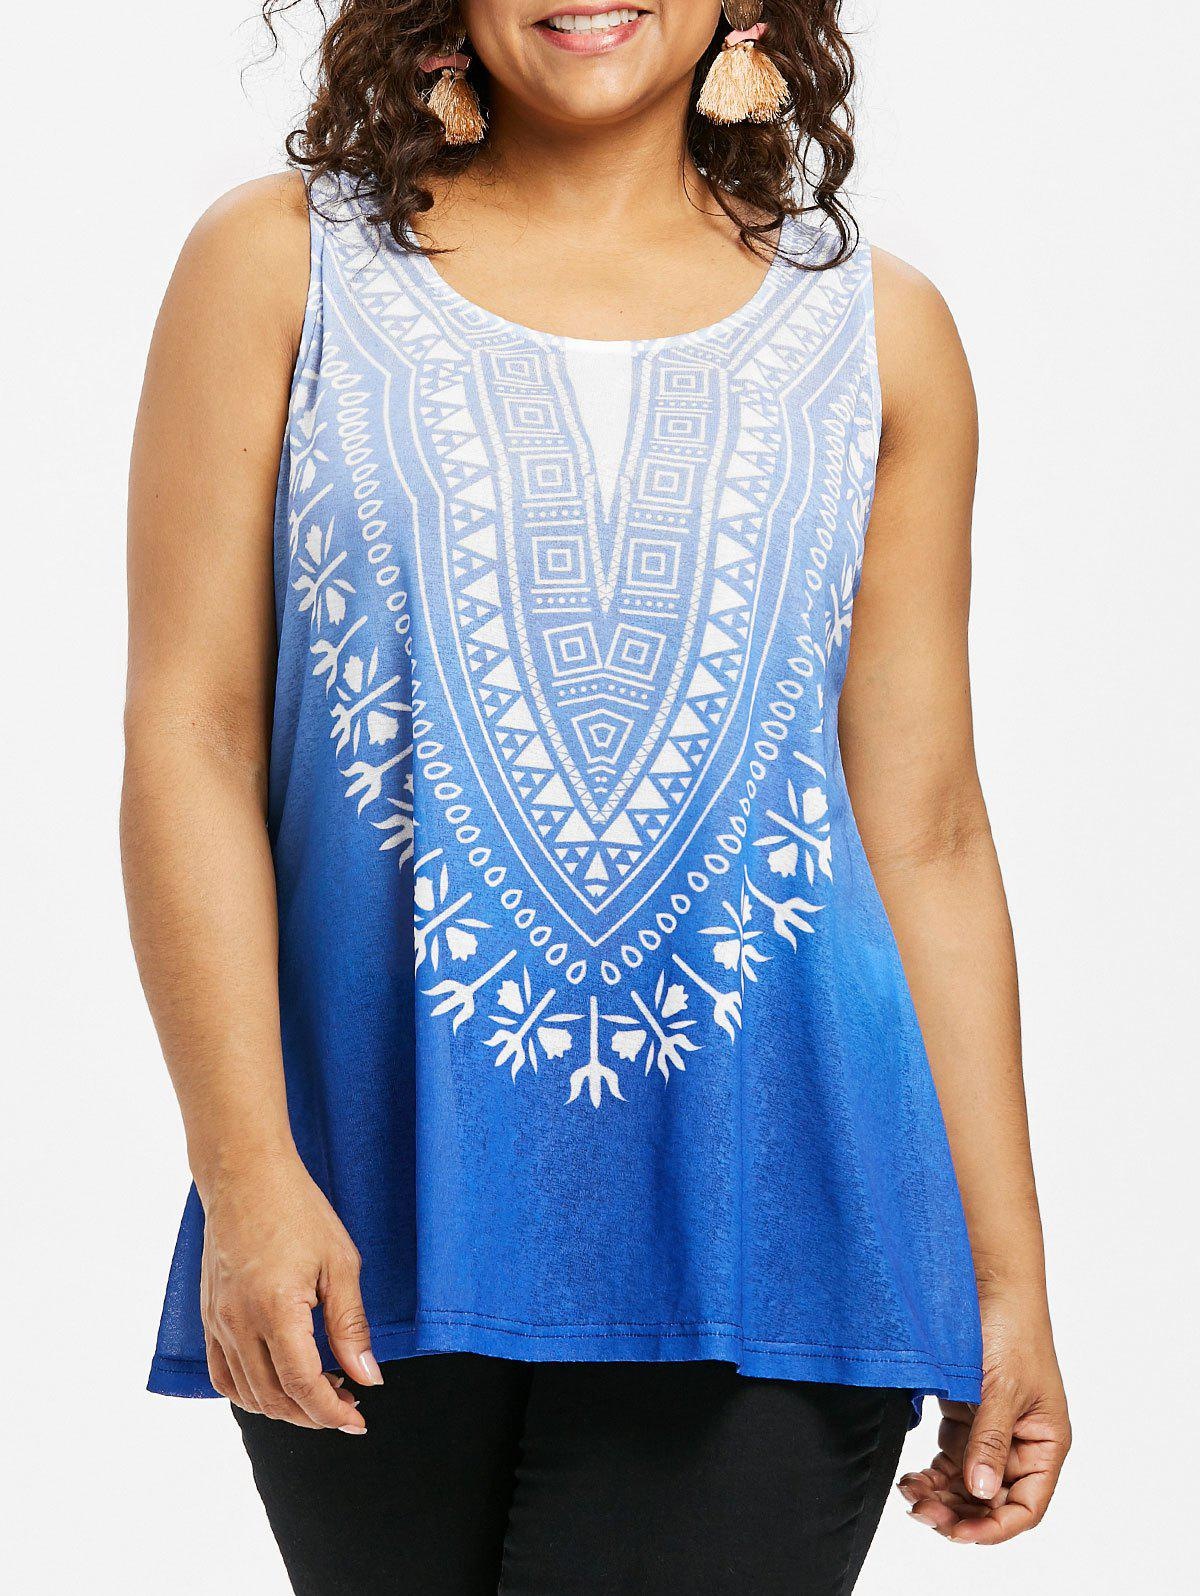 af1dc4cb370 68% OFF   2018 Printed Plus Size Ombre Tank Top In Silk Blue 3x ...